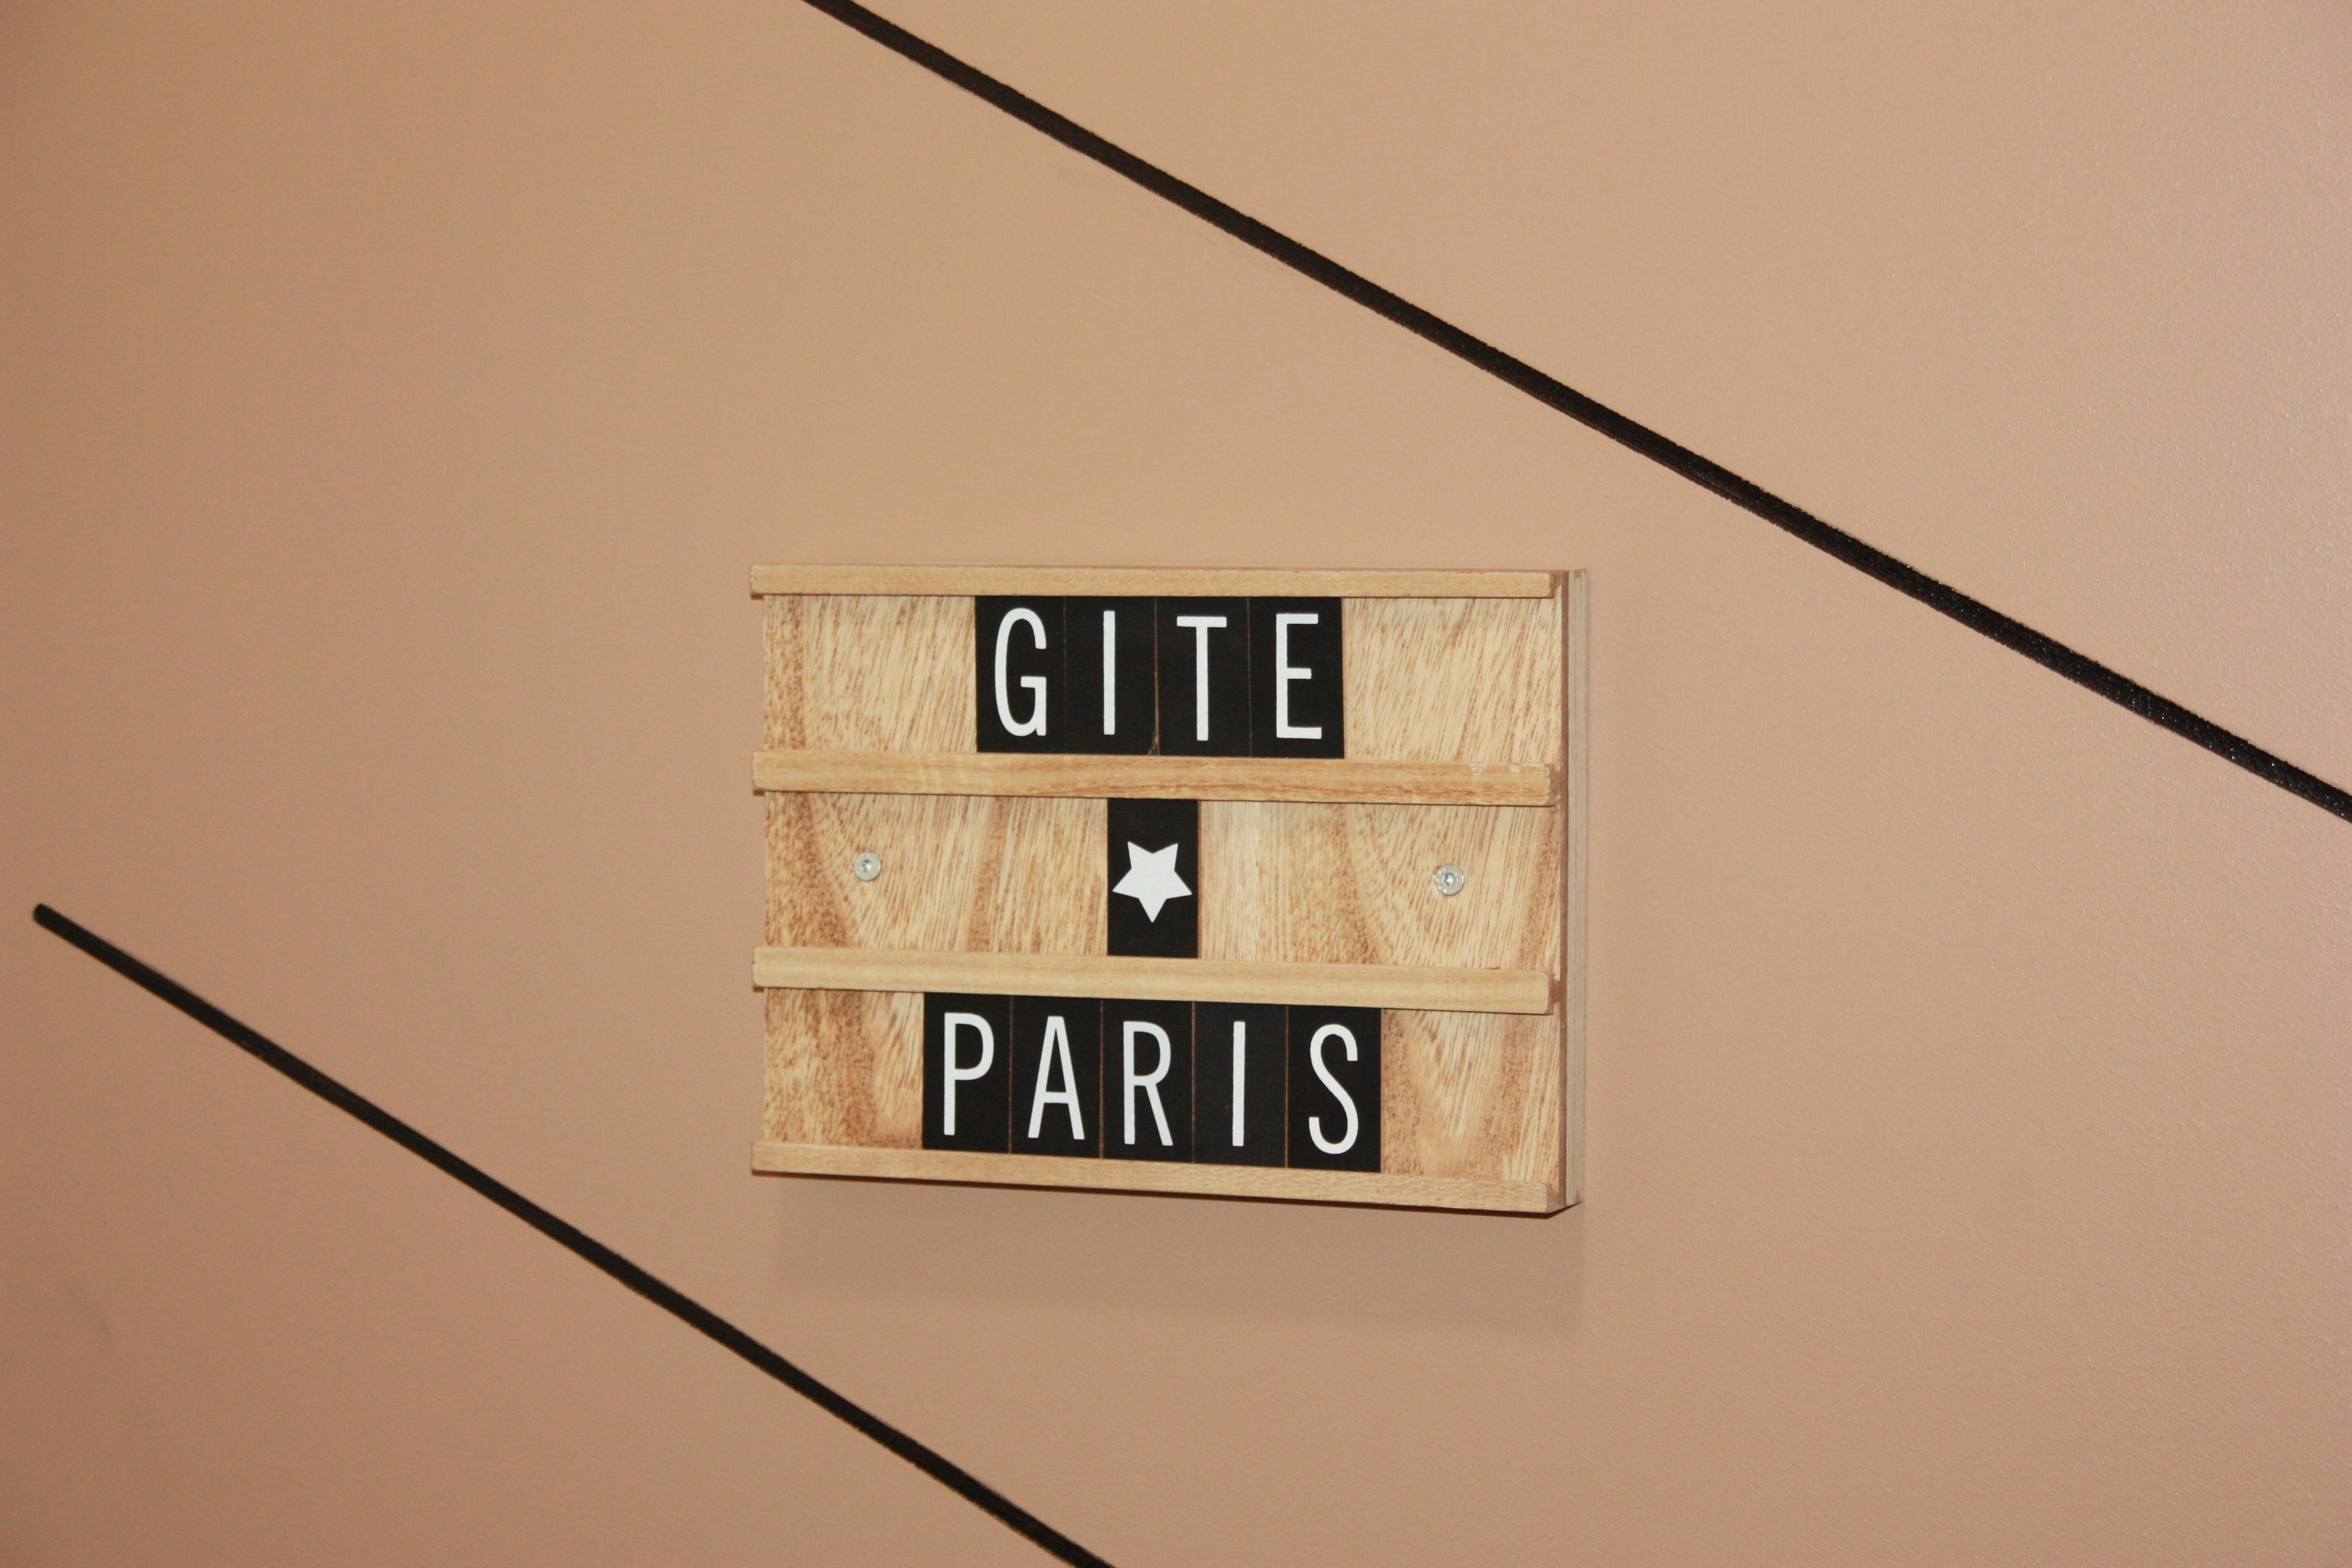 GITE PARIS